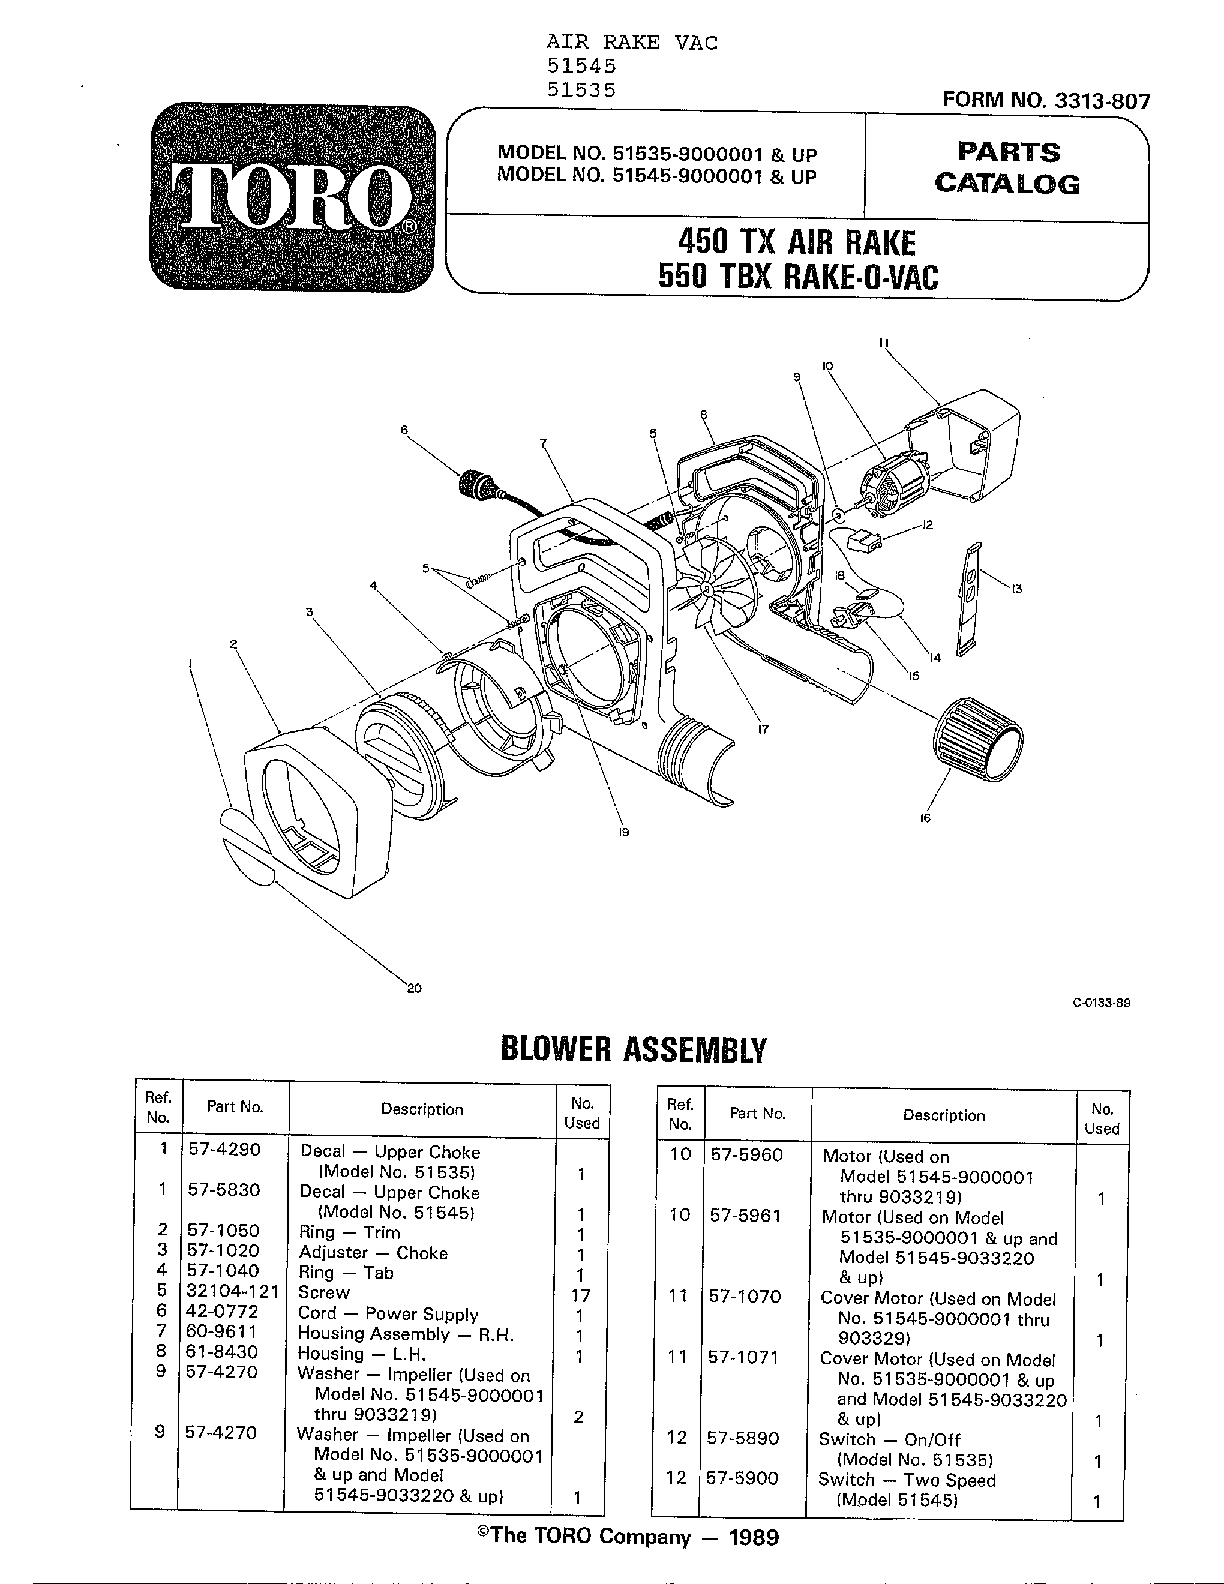 Toro 51535 blower assembly diagram